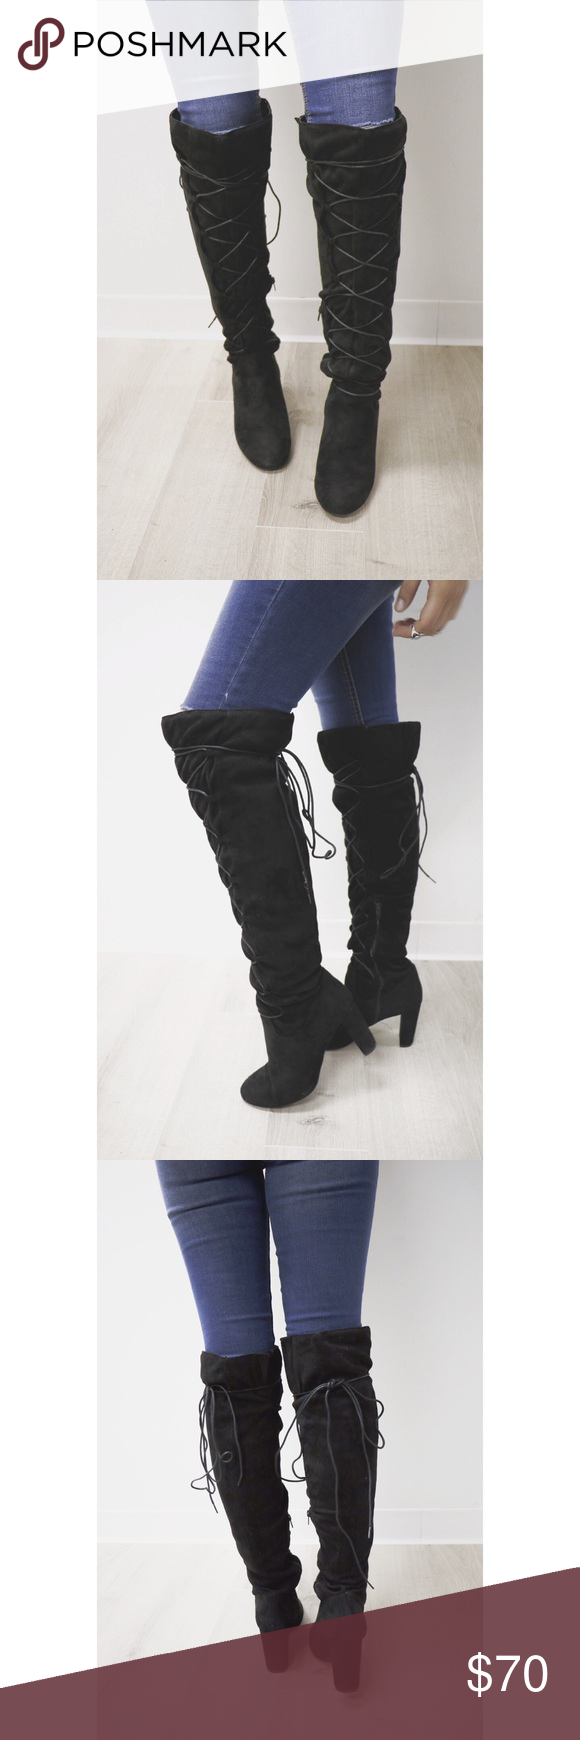 674fc240bf0 Black Suede Over The Knee Boots Boutique